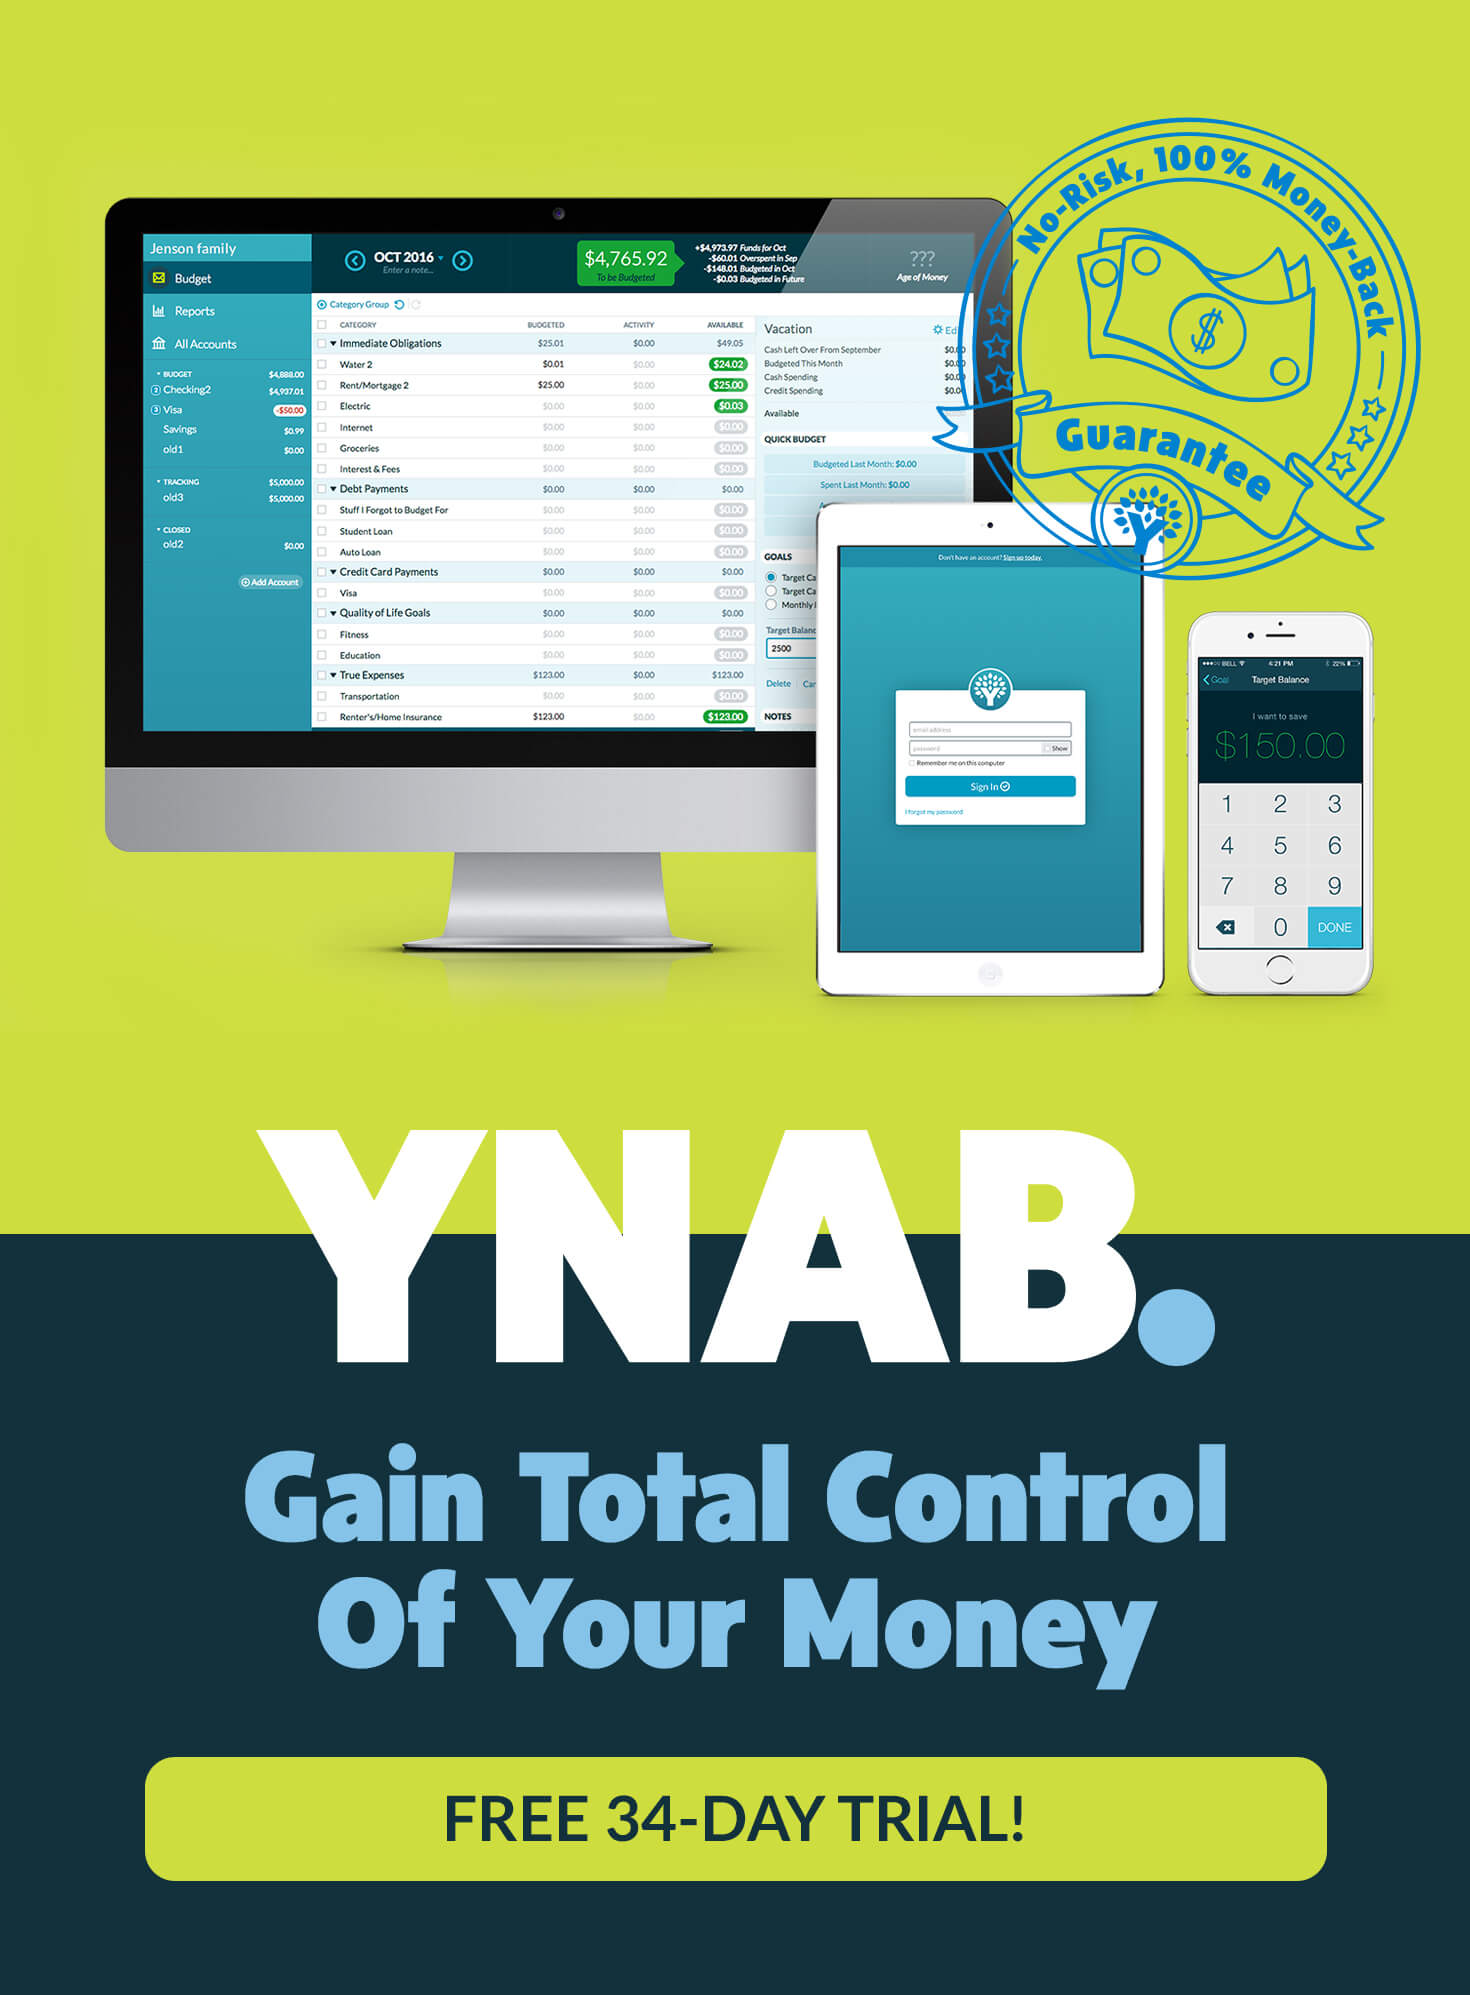 YNAB. No-Risk, 100% Money-Back Guarantee. FREE 34-Day Trial!